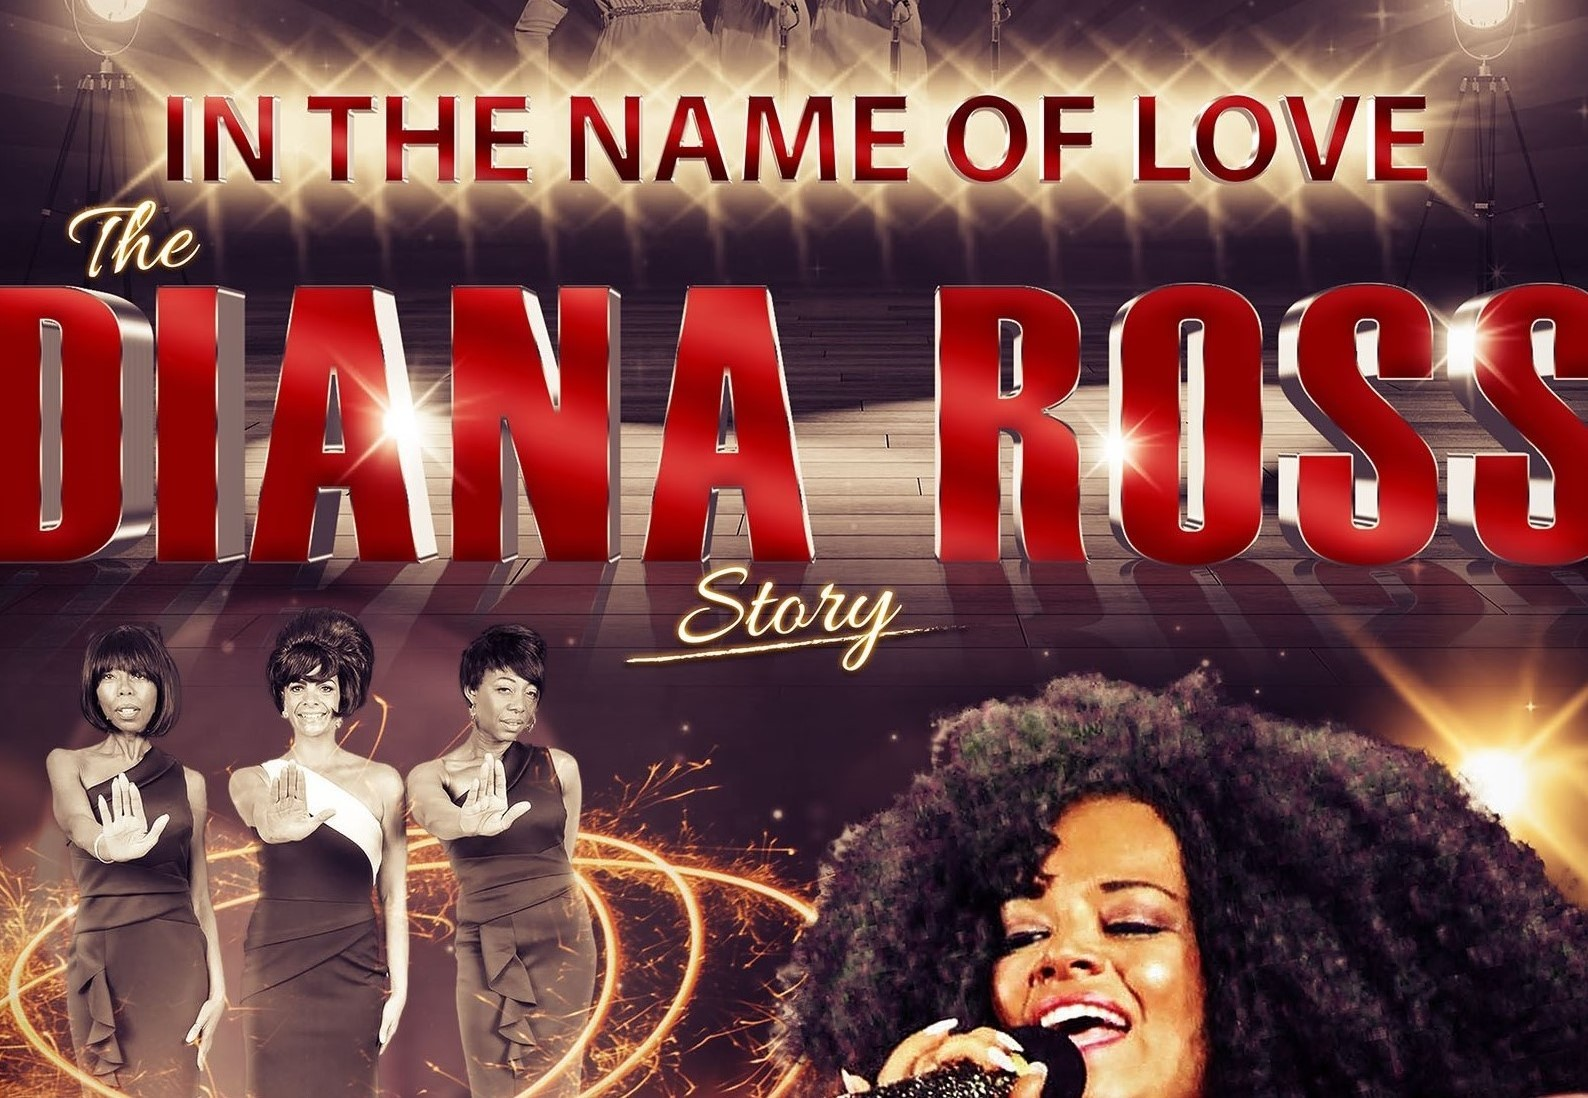 The Diana Ross Story- In The Name Of Love